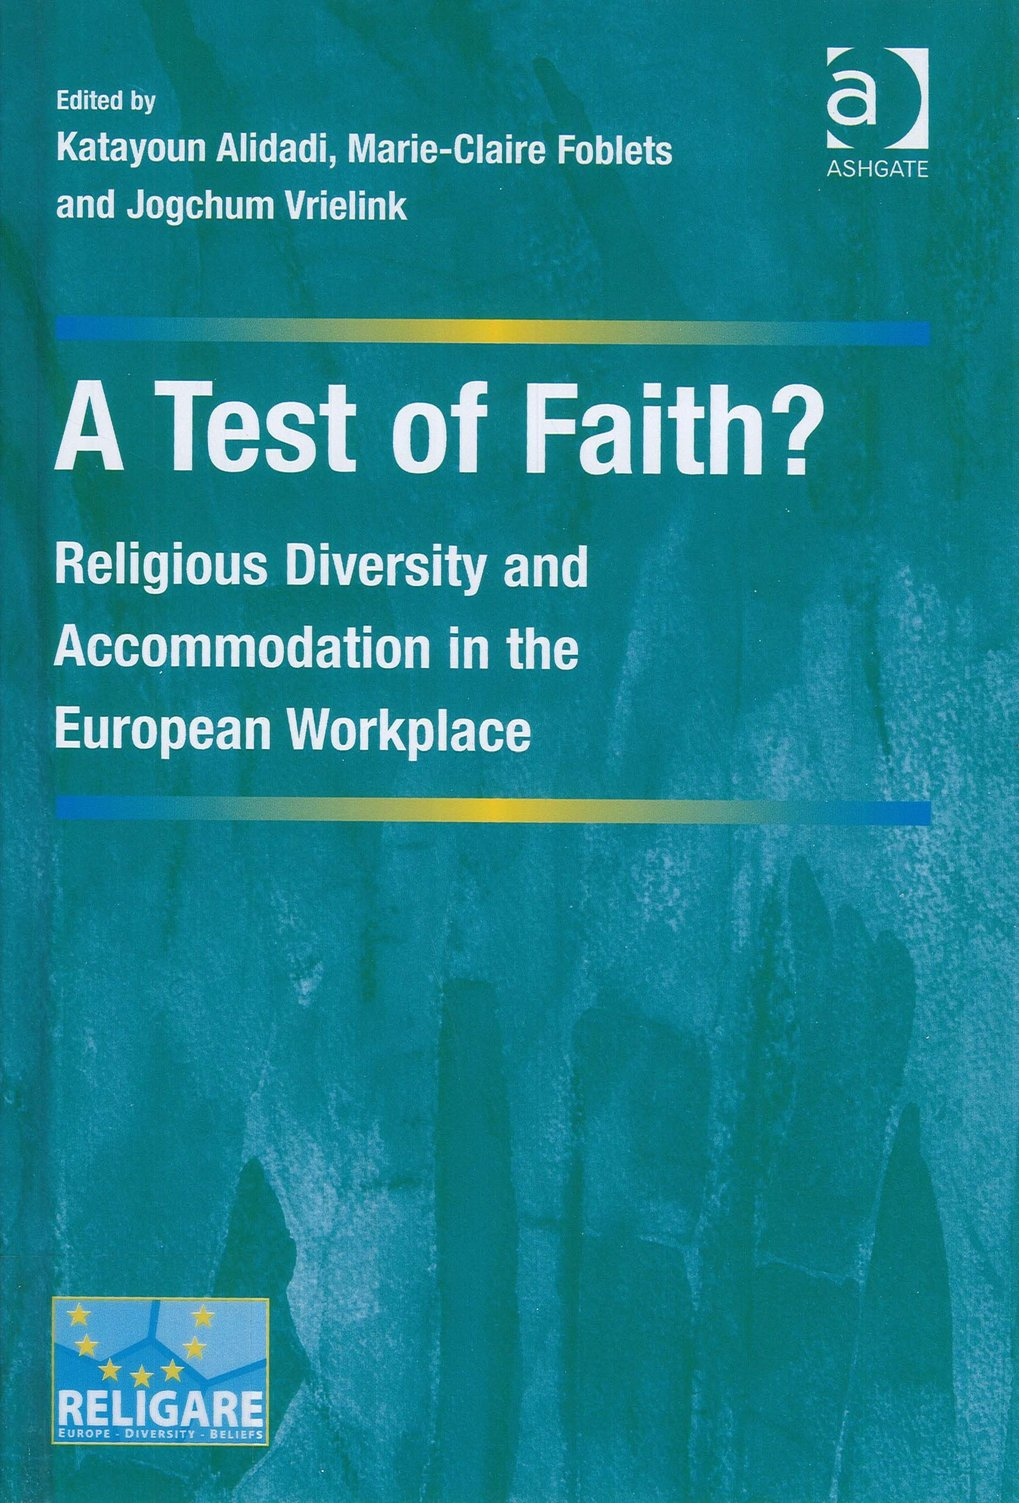 religious diversity in the workplace essays Best practices for managing religious diversity in the workplace aba annual meeting, august 8, 2014  barbara berish brown, paul hastings llp  harsimran kaur, the sikh coalition.